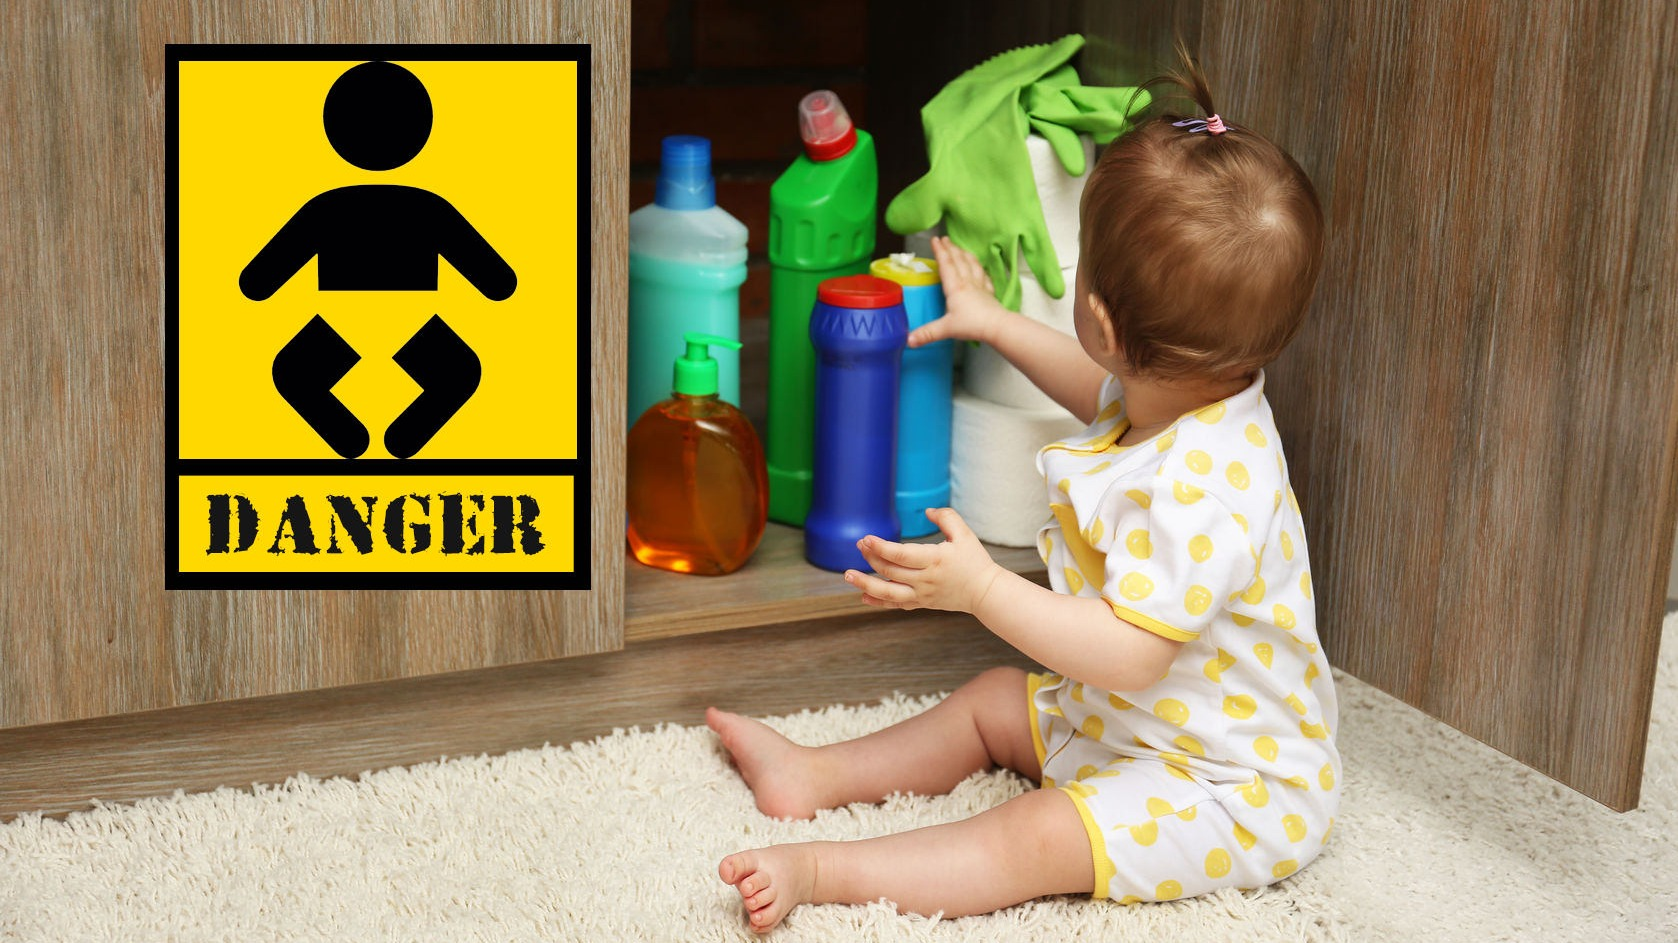 toxic household chemicals, dangerous cleaning products, child safety